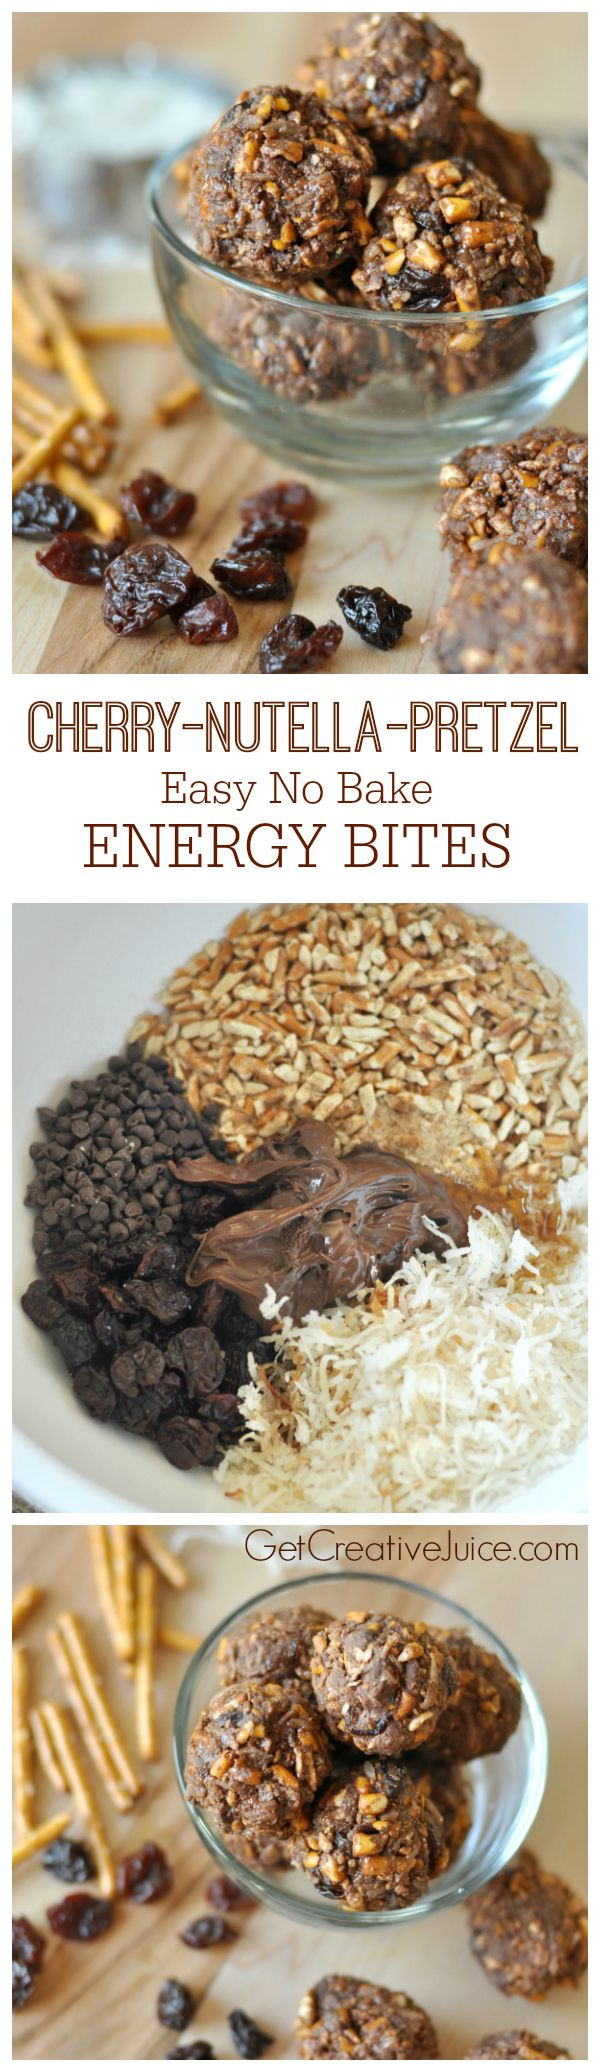 Cherry, Nutella, & Pretzel Energy Bites - no bake, easy, and so good!